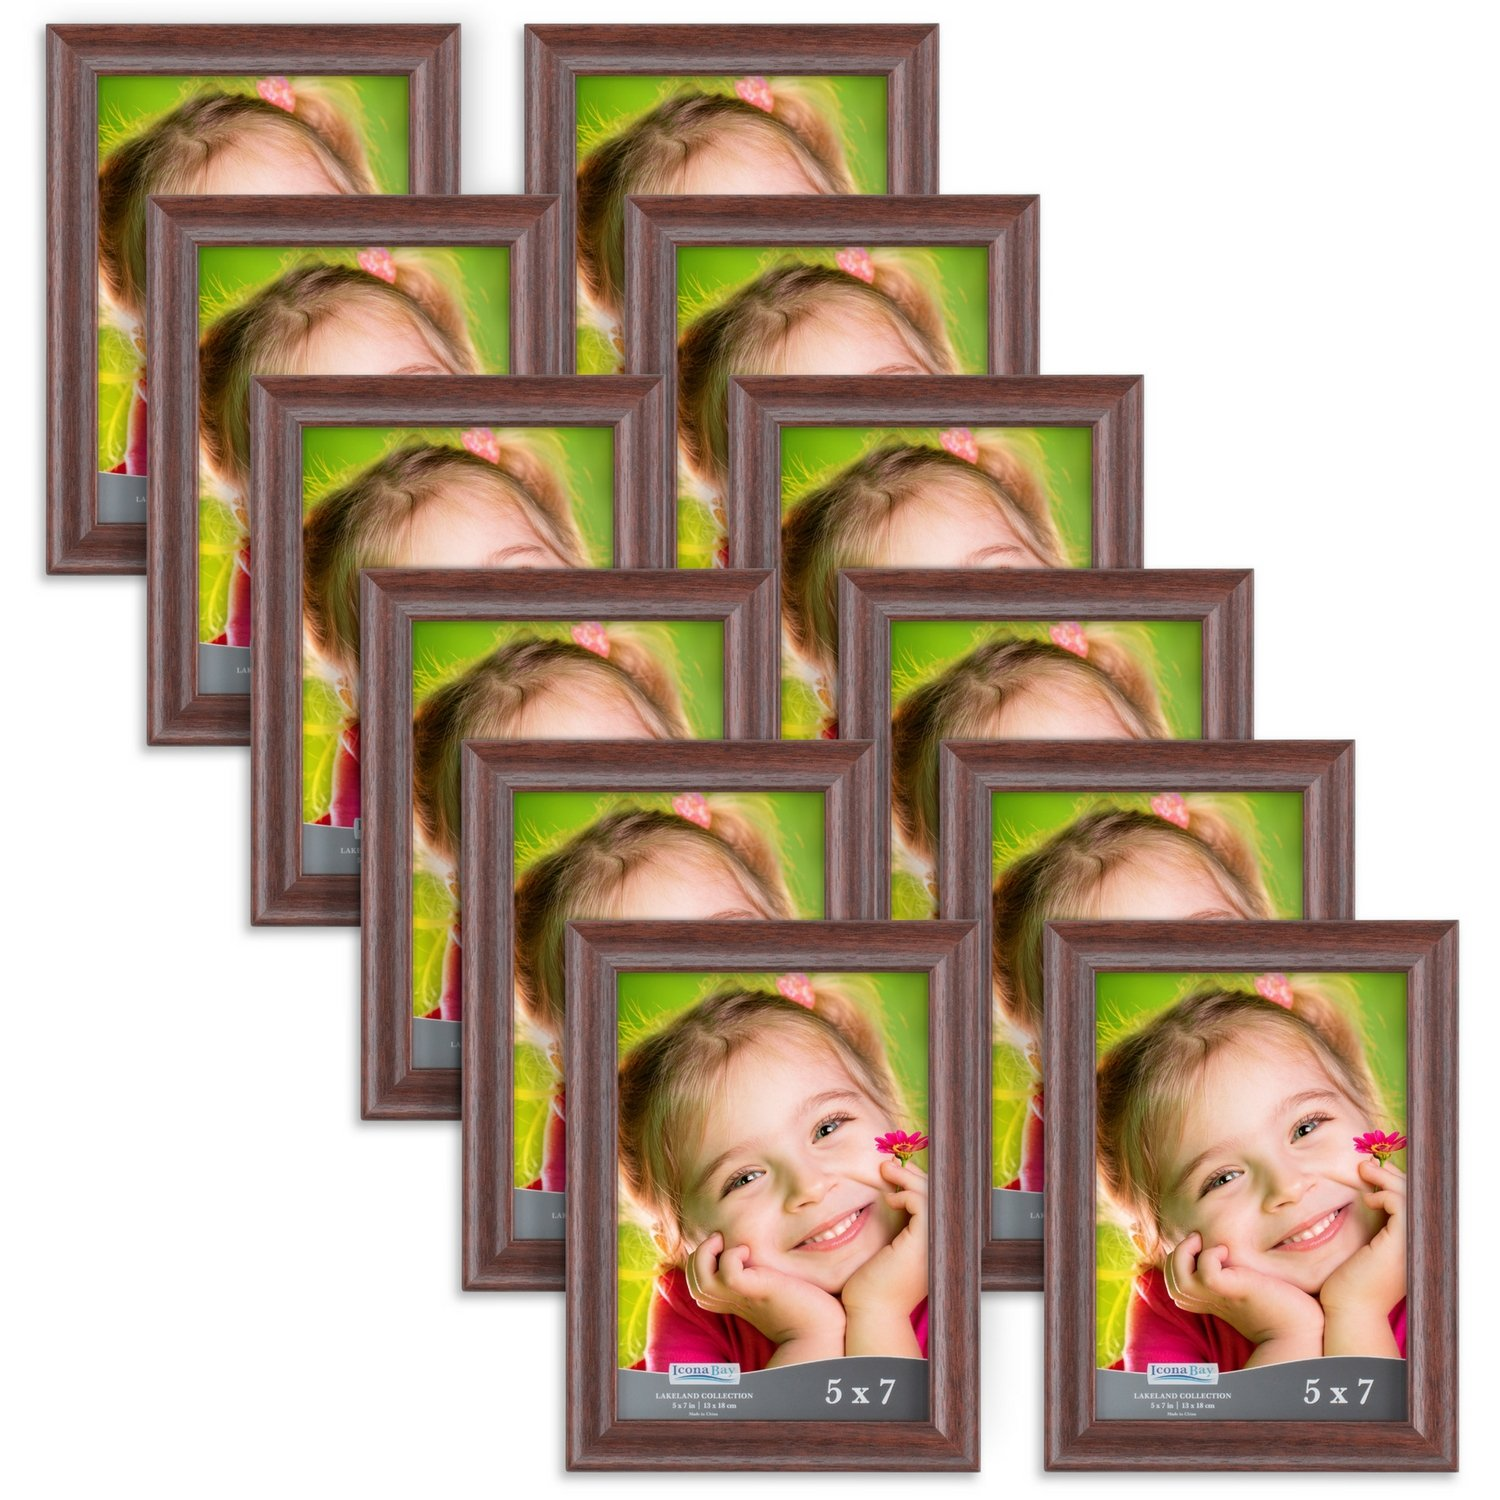 Icona Bay 5x7 Picture Frame (12 Pack, Teak Wood Finish), Photo Frame 5 x 7, Composite Wood Frame for Walls or Tables, Set of 12 Lakeland Collection by Icona Bay